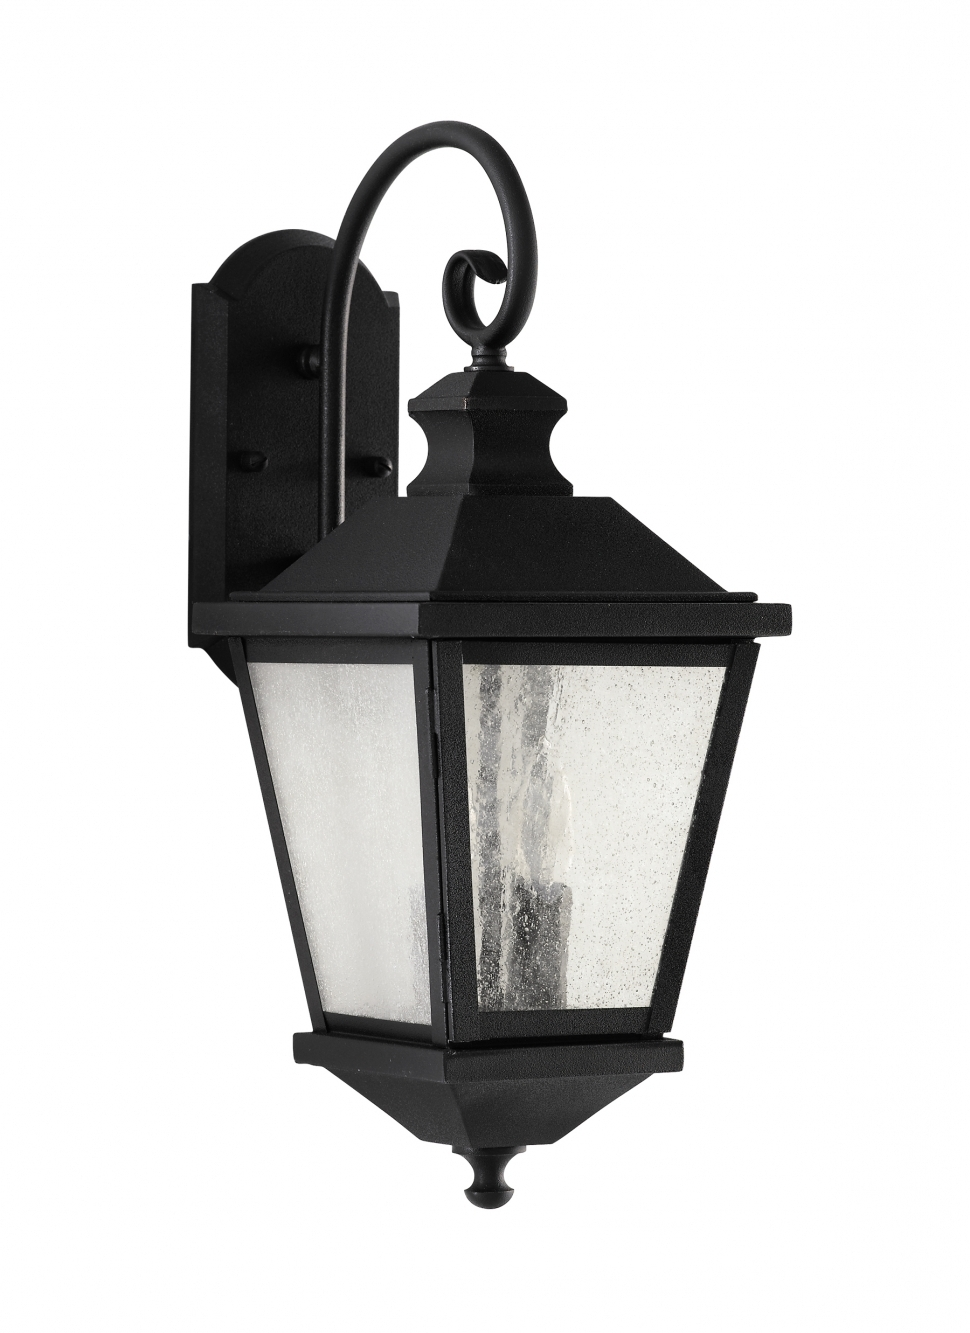 Electrical Wiring : Awesome Outdoor Ceiling Light With Outlet And Intended For Most Recently Released Outdoor Ceiling Light With Outlet (View 4 of 20)